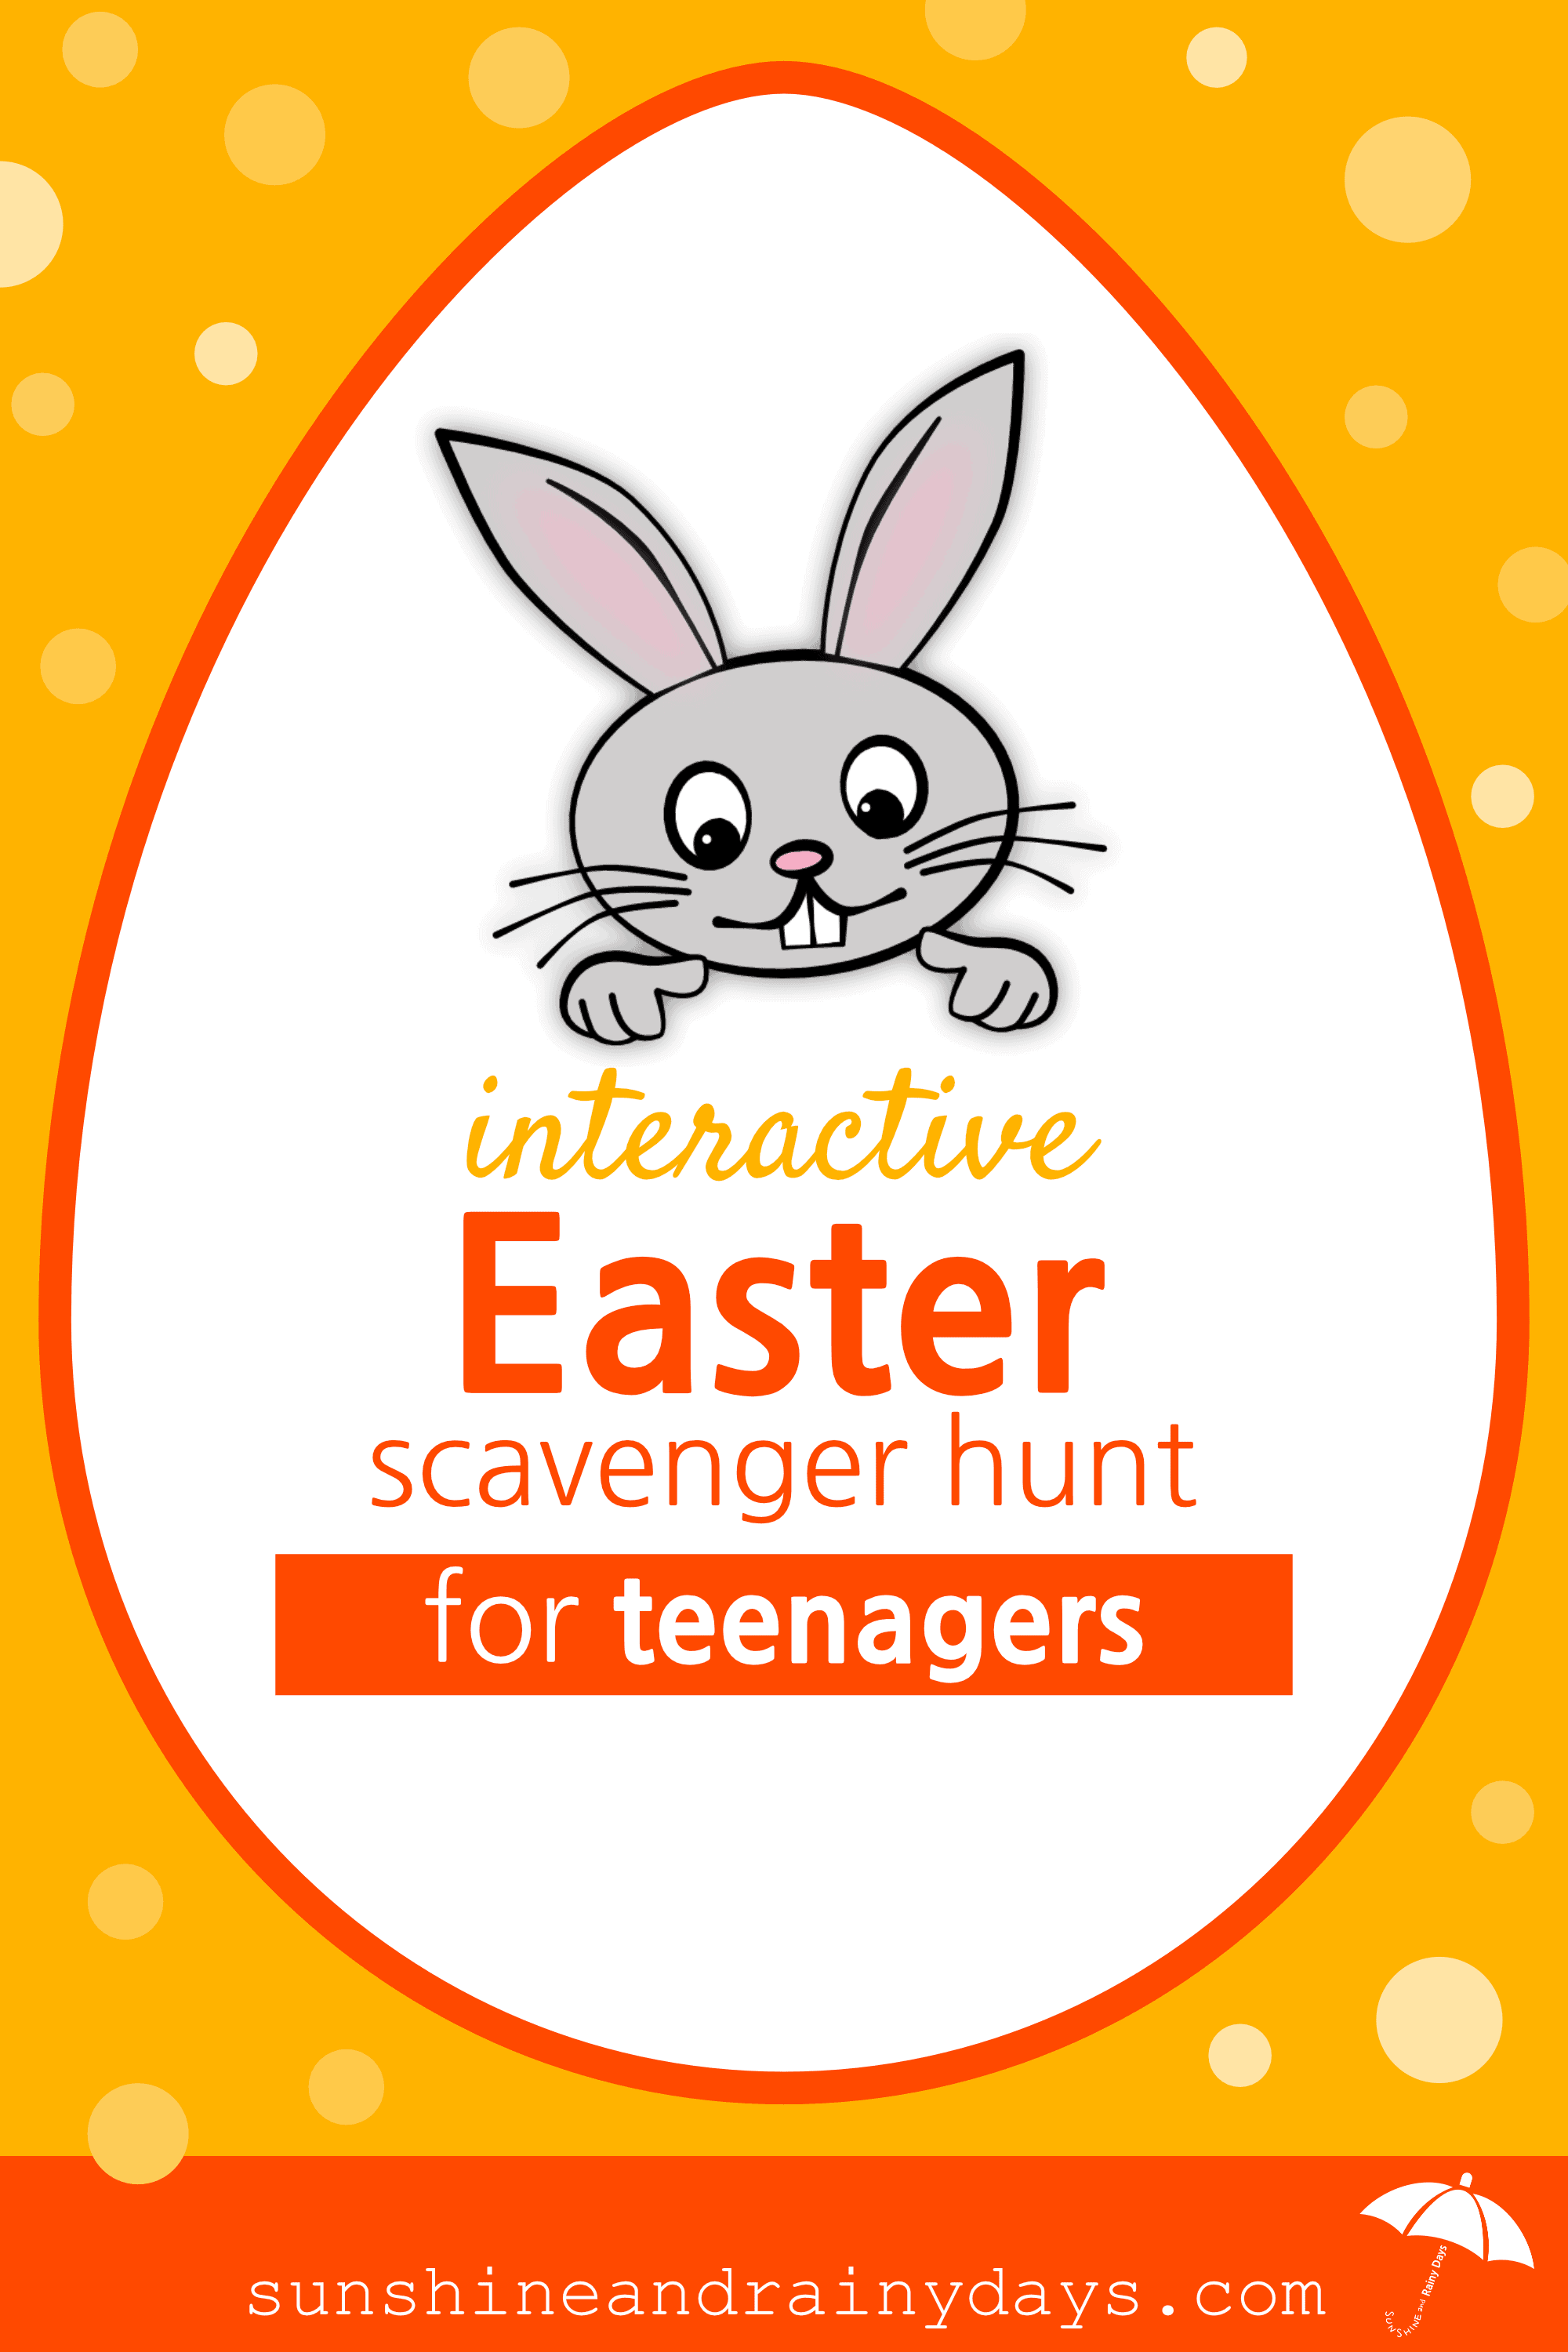 The Interactive Easter Scavenger Hunt For Teenagers combines online tasks with Easter Printables to lead your teenagers on an interactive quest to find their Easter Treat! Our teens love technology so we're using it to make Easter FUN for them and EASY for you!